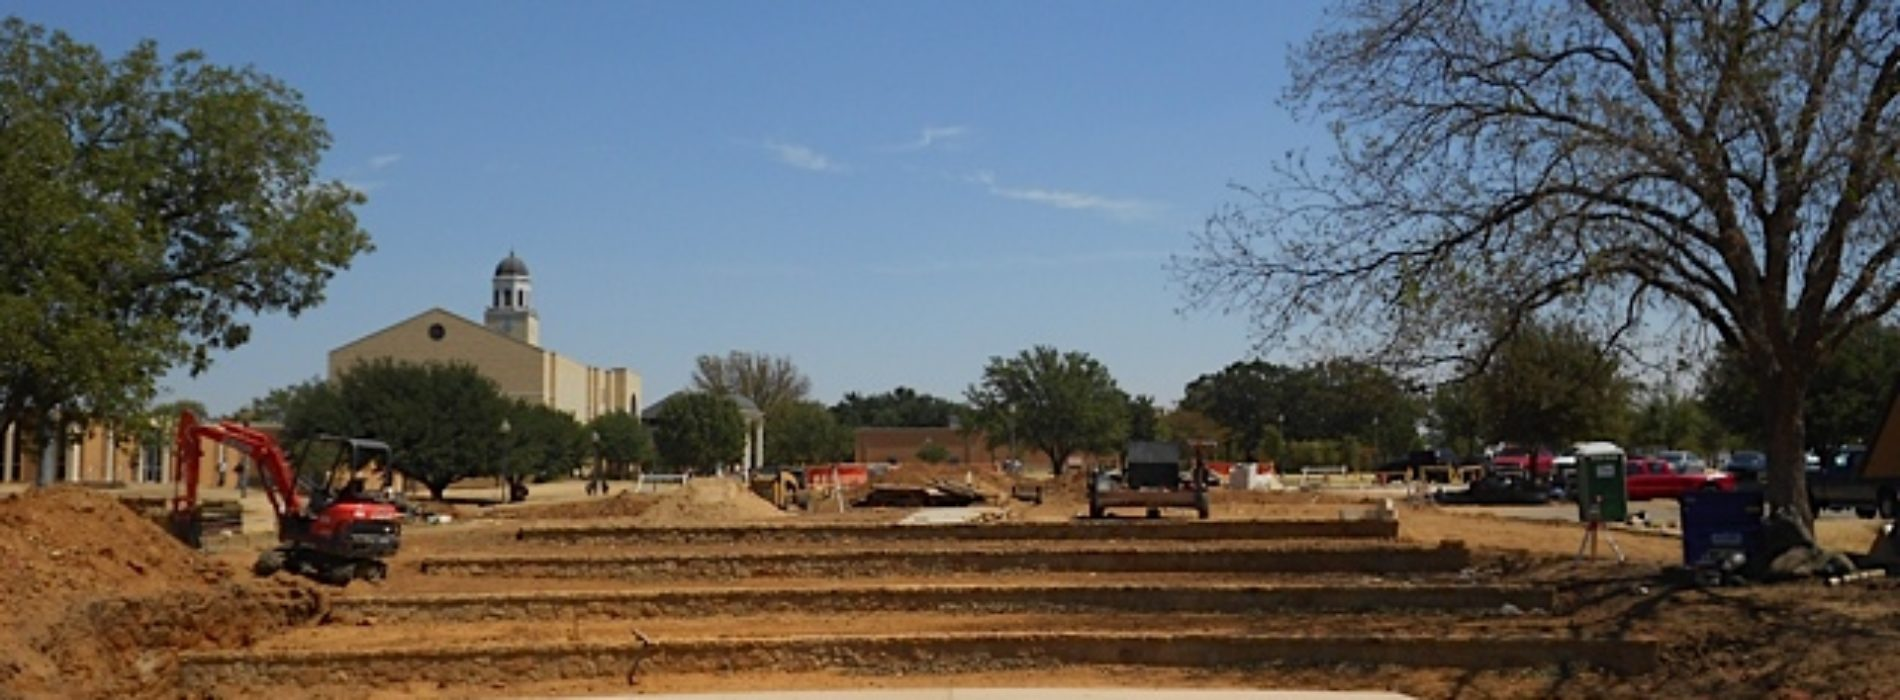 Construction Continues on Outdoor Theater